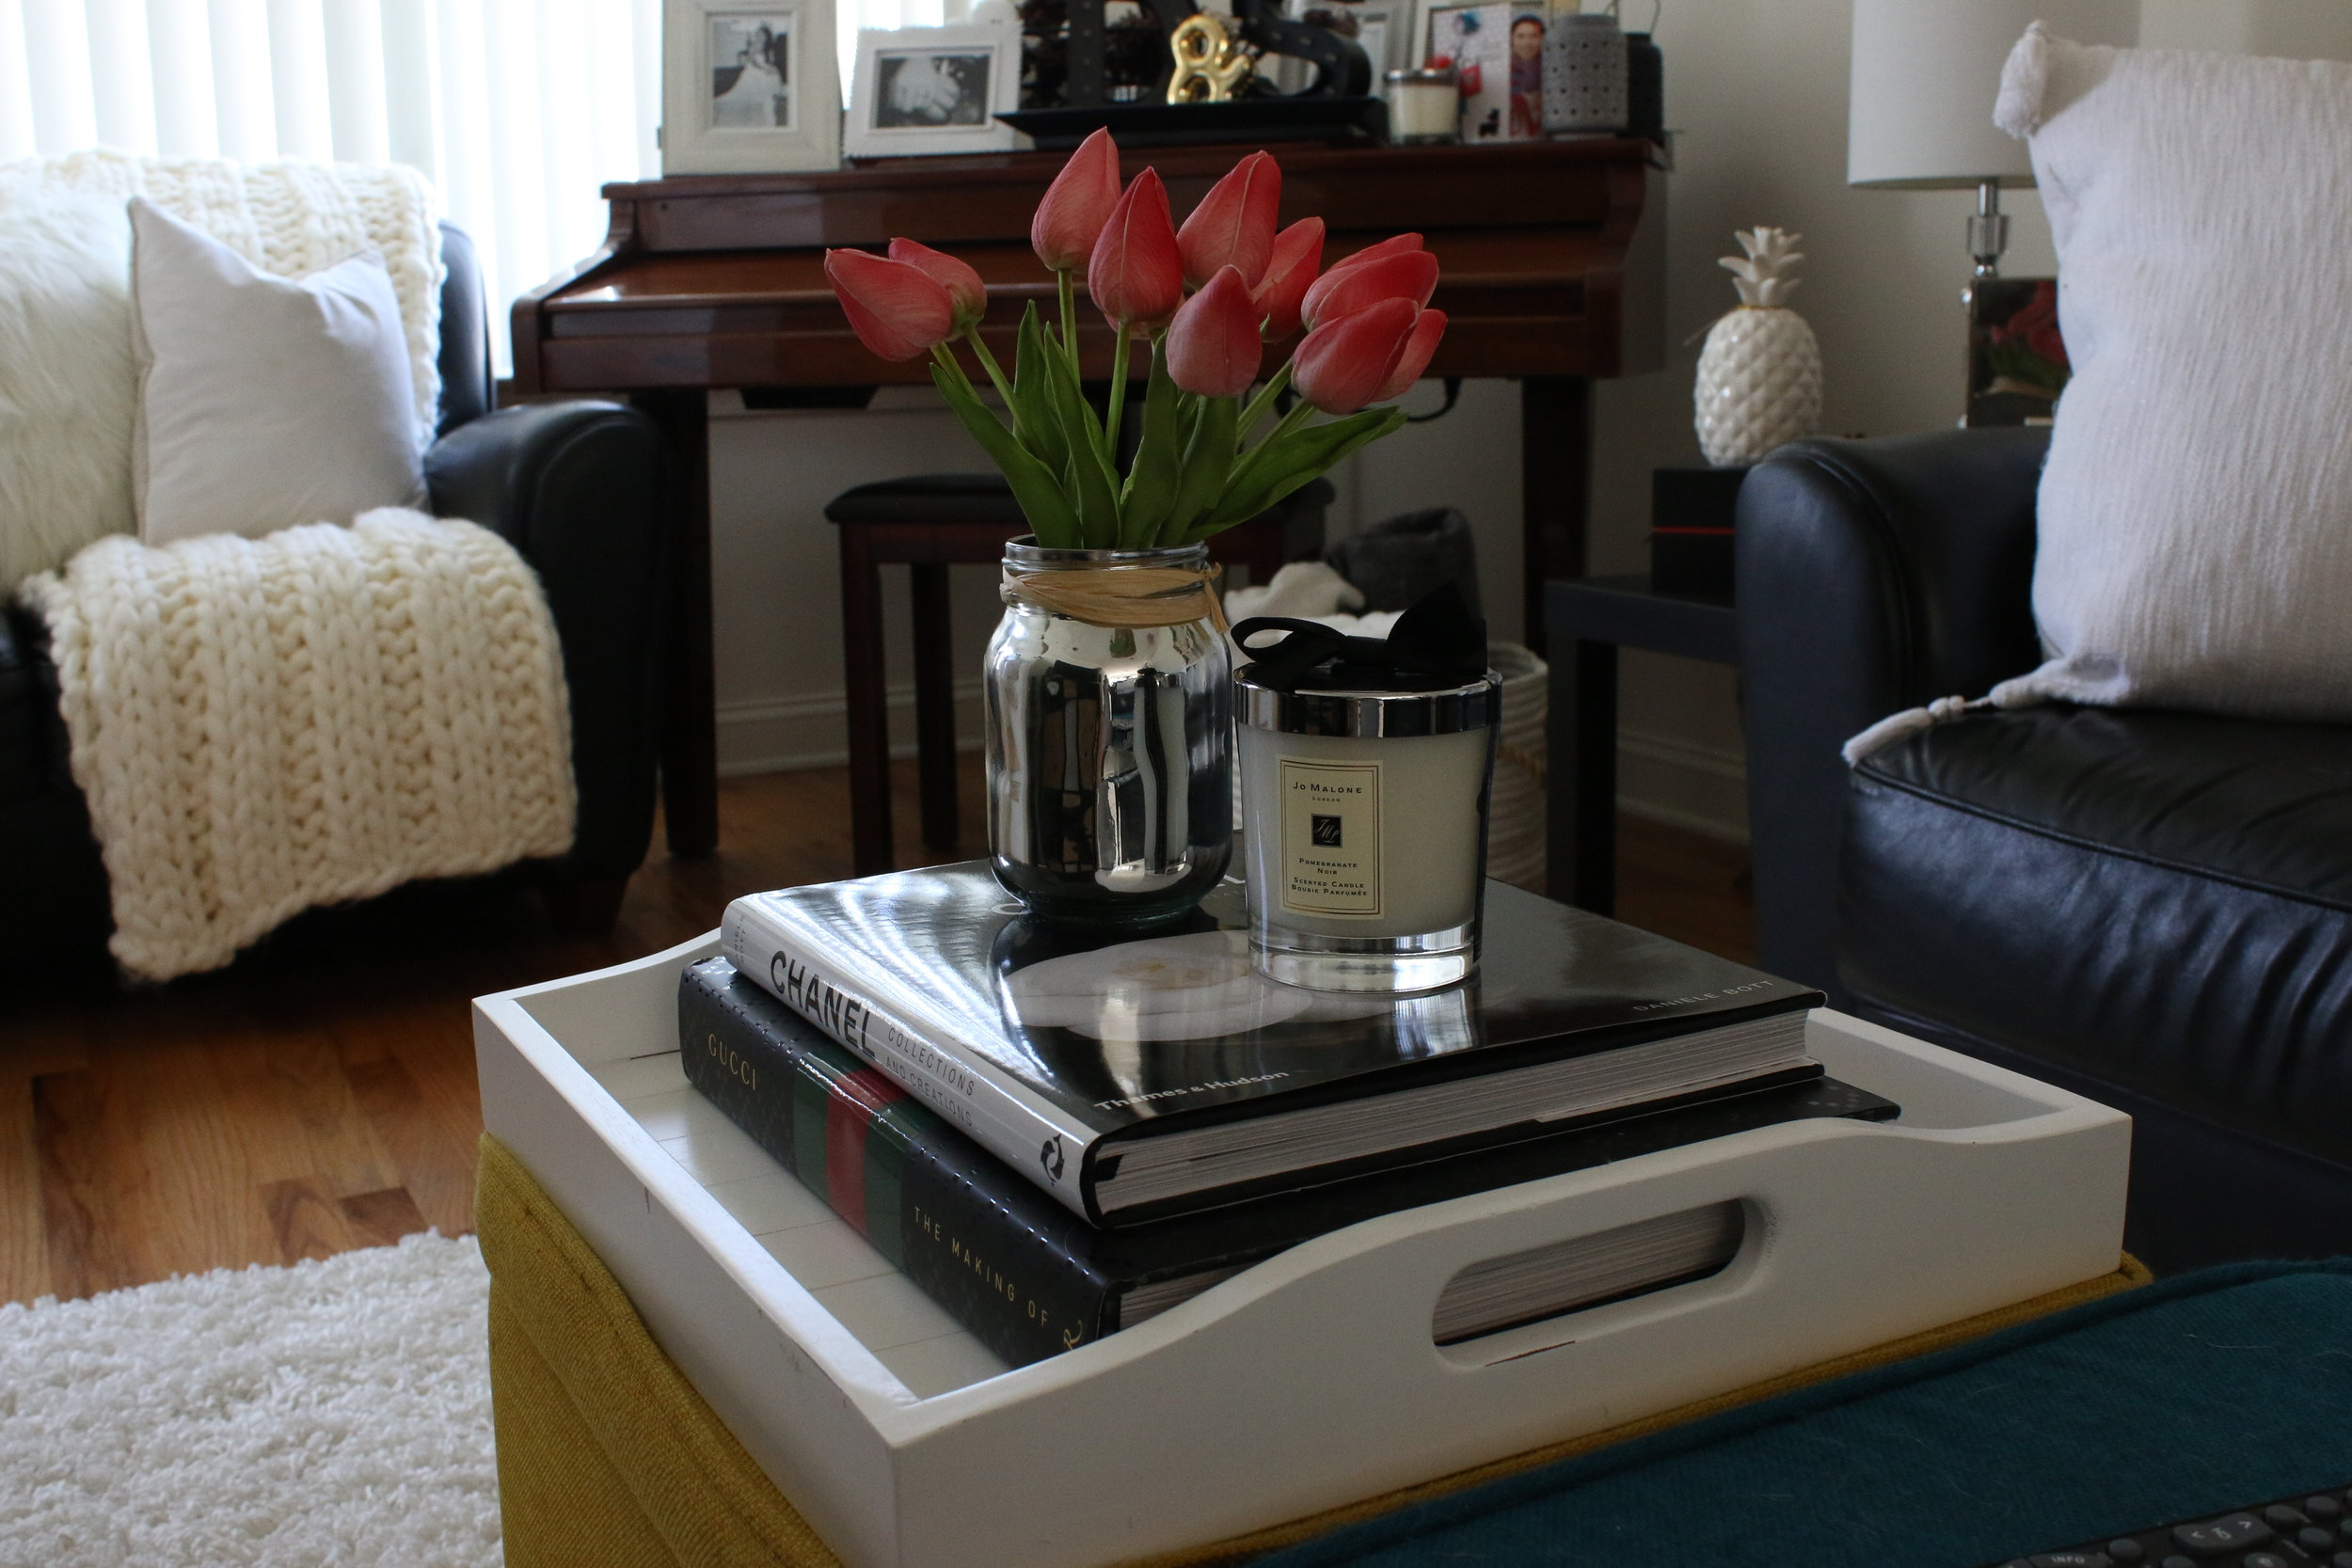 The tray and the vase of tulips,I got them from HomeGoods. The fashion hardcover books from Amazon.